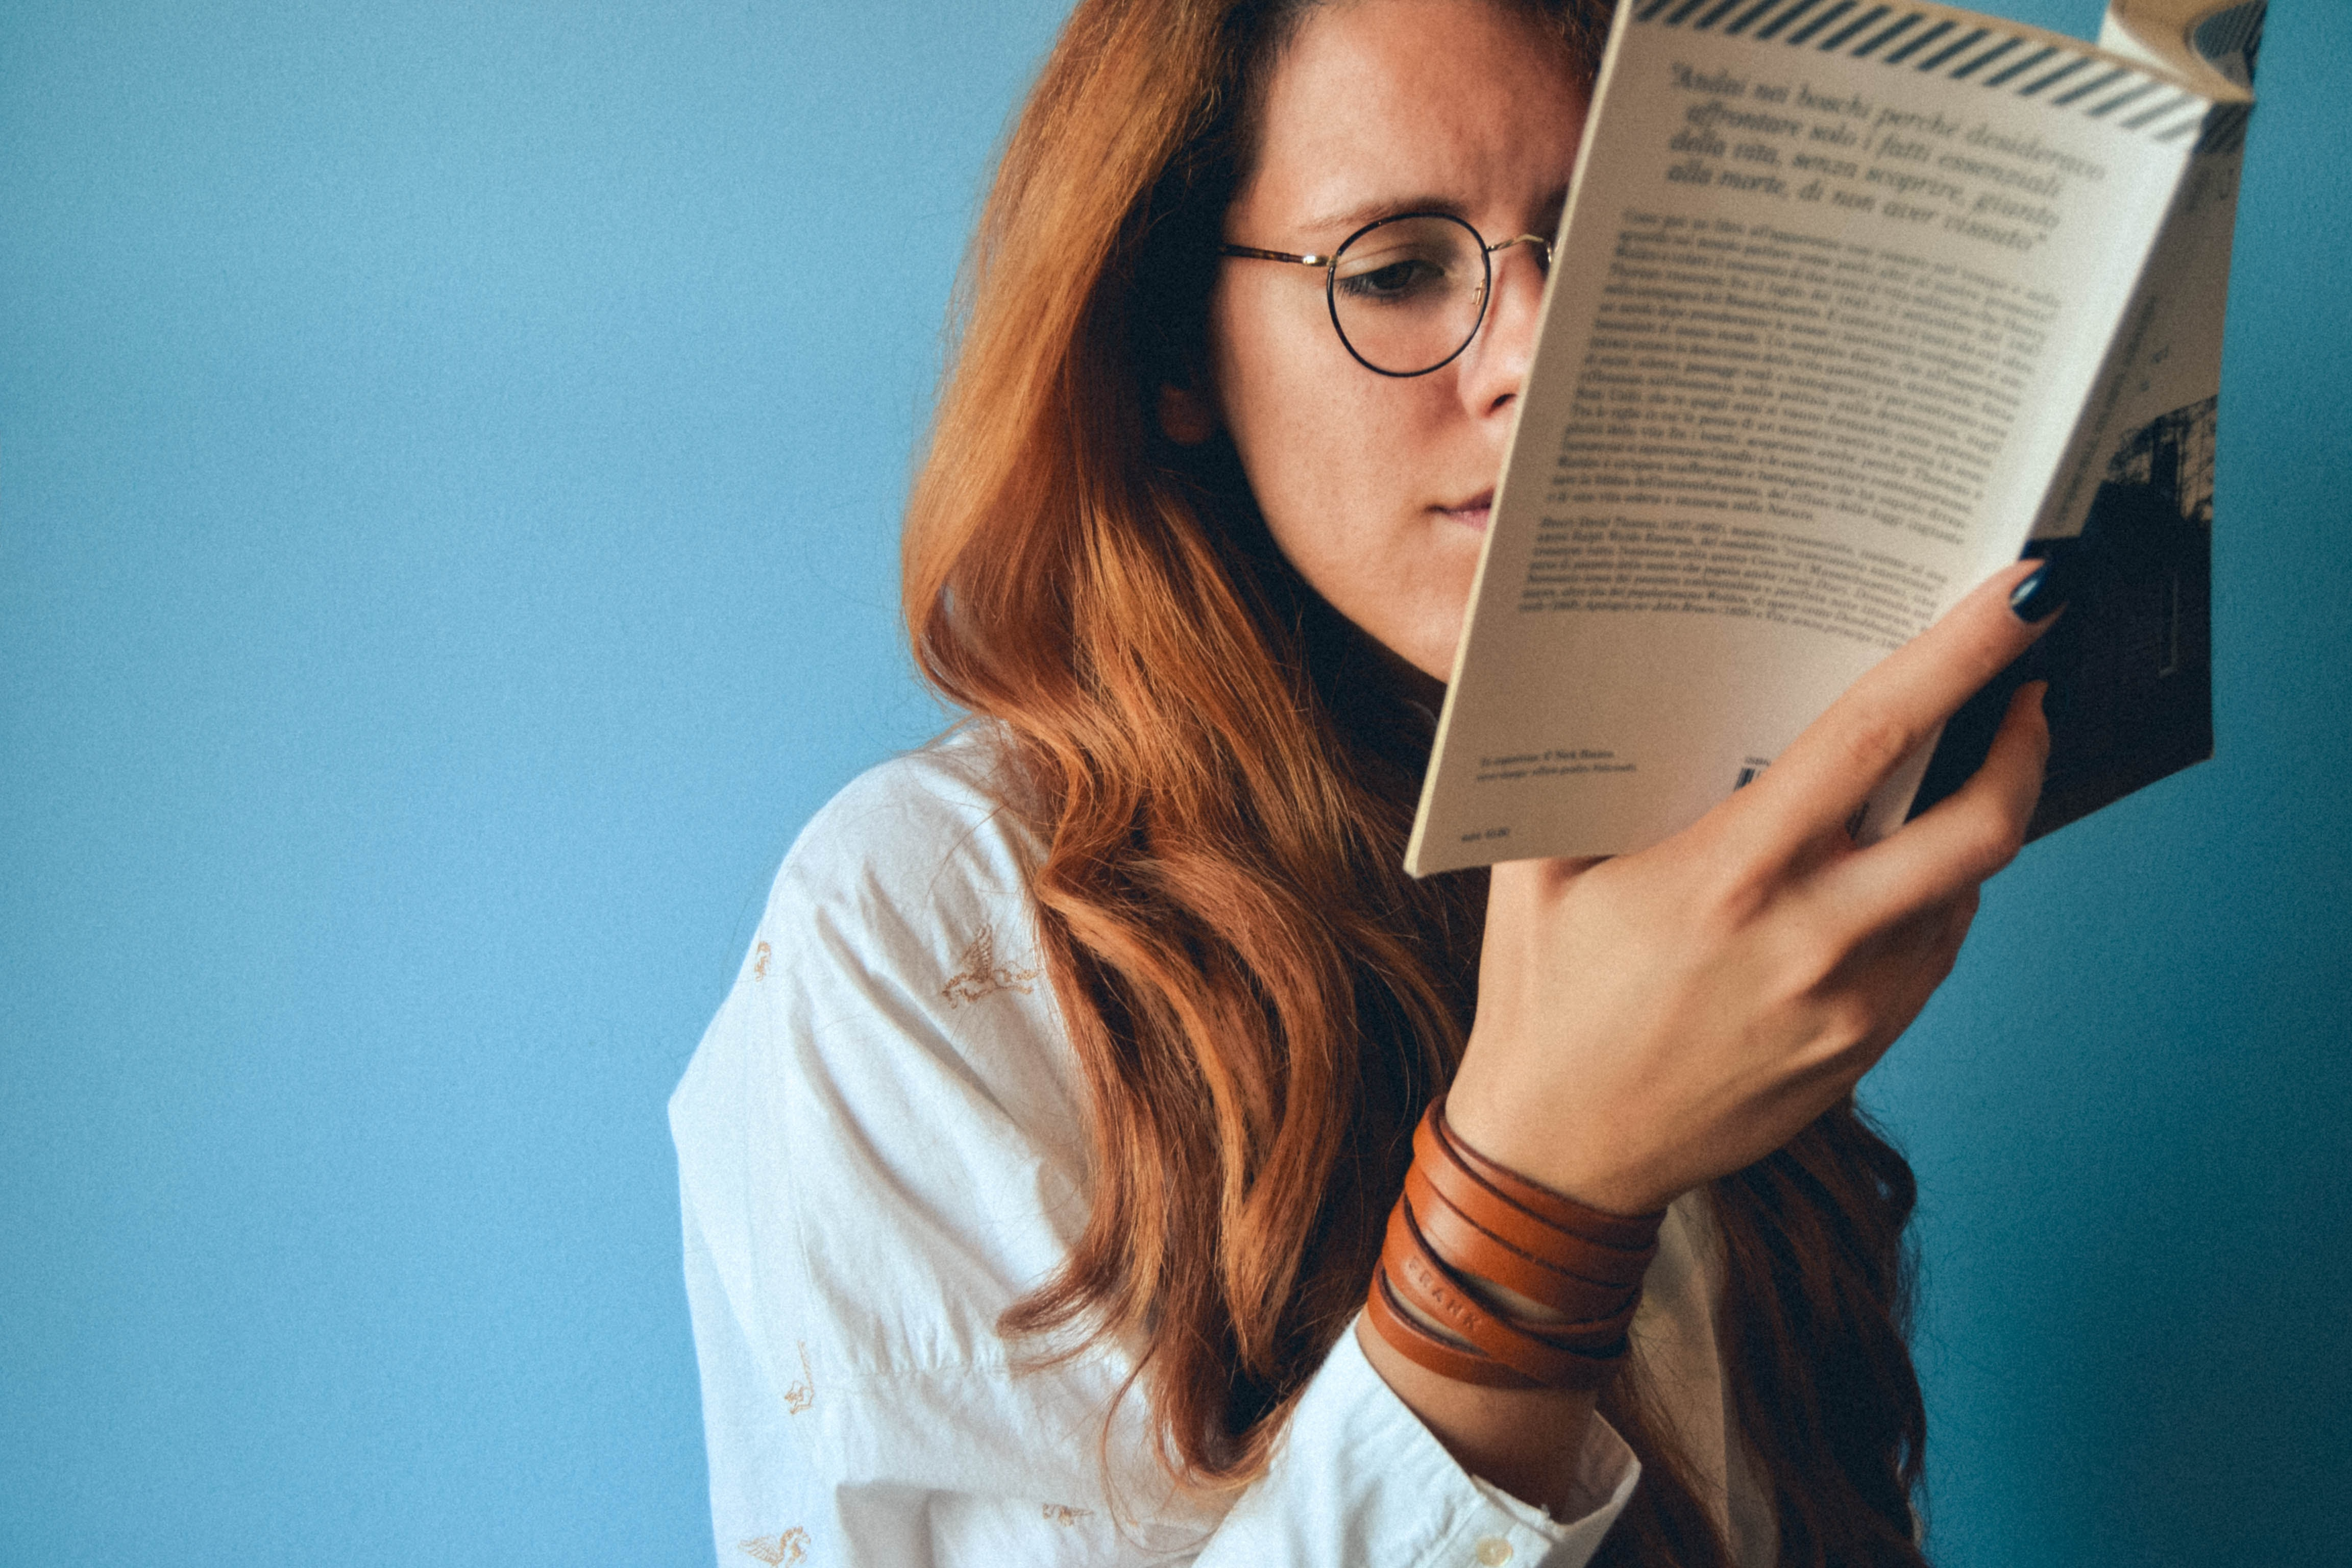 woman looking closely at book